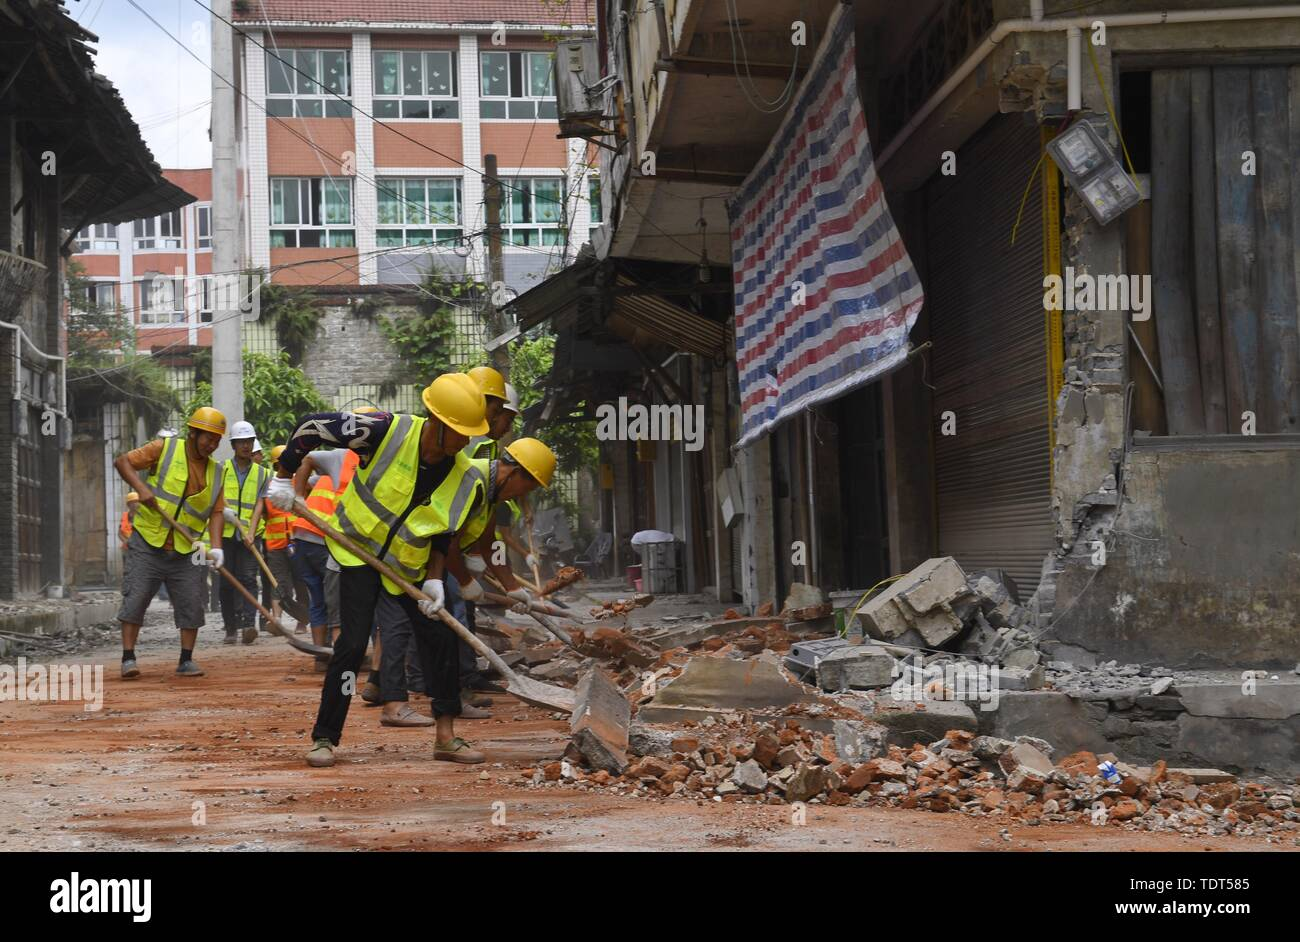 Changning, China's Sichuan Province. 18th June, 2019. Workers clean a road at Shuanghe Town in Changning County of Yibin City, southwest China's Sichuan Province, June 18, 2019. Thirteen people died and 199 were injured after a 6.0-magnitude earthquake hit southwest China's Sichuan Province at 10:55 p.m. Monday, the Ministry of Emergency Management said Tuesday. Credit: Liu Kun/Xinhua/Alamy Live News - Stock Image